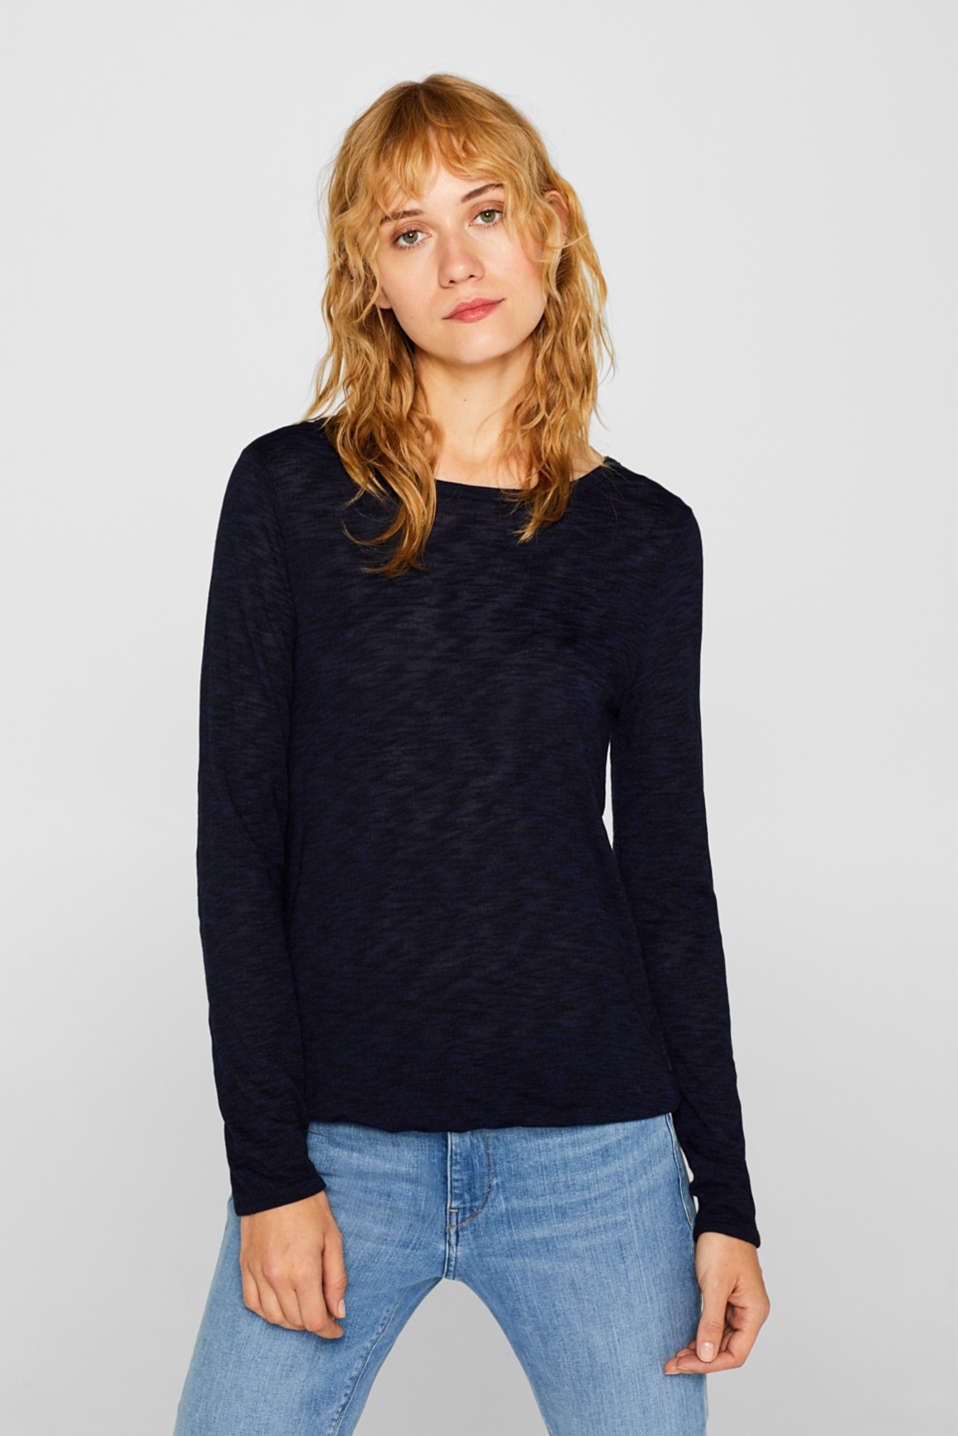 Esprit - Long sleeve top made of melange slub jersey